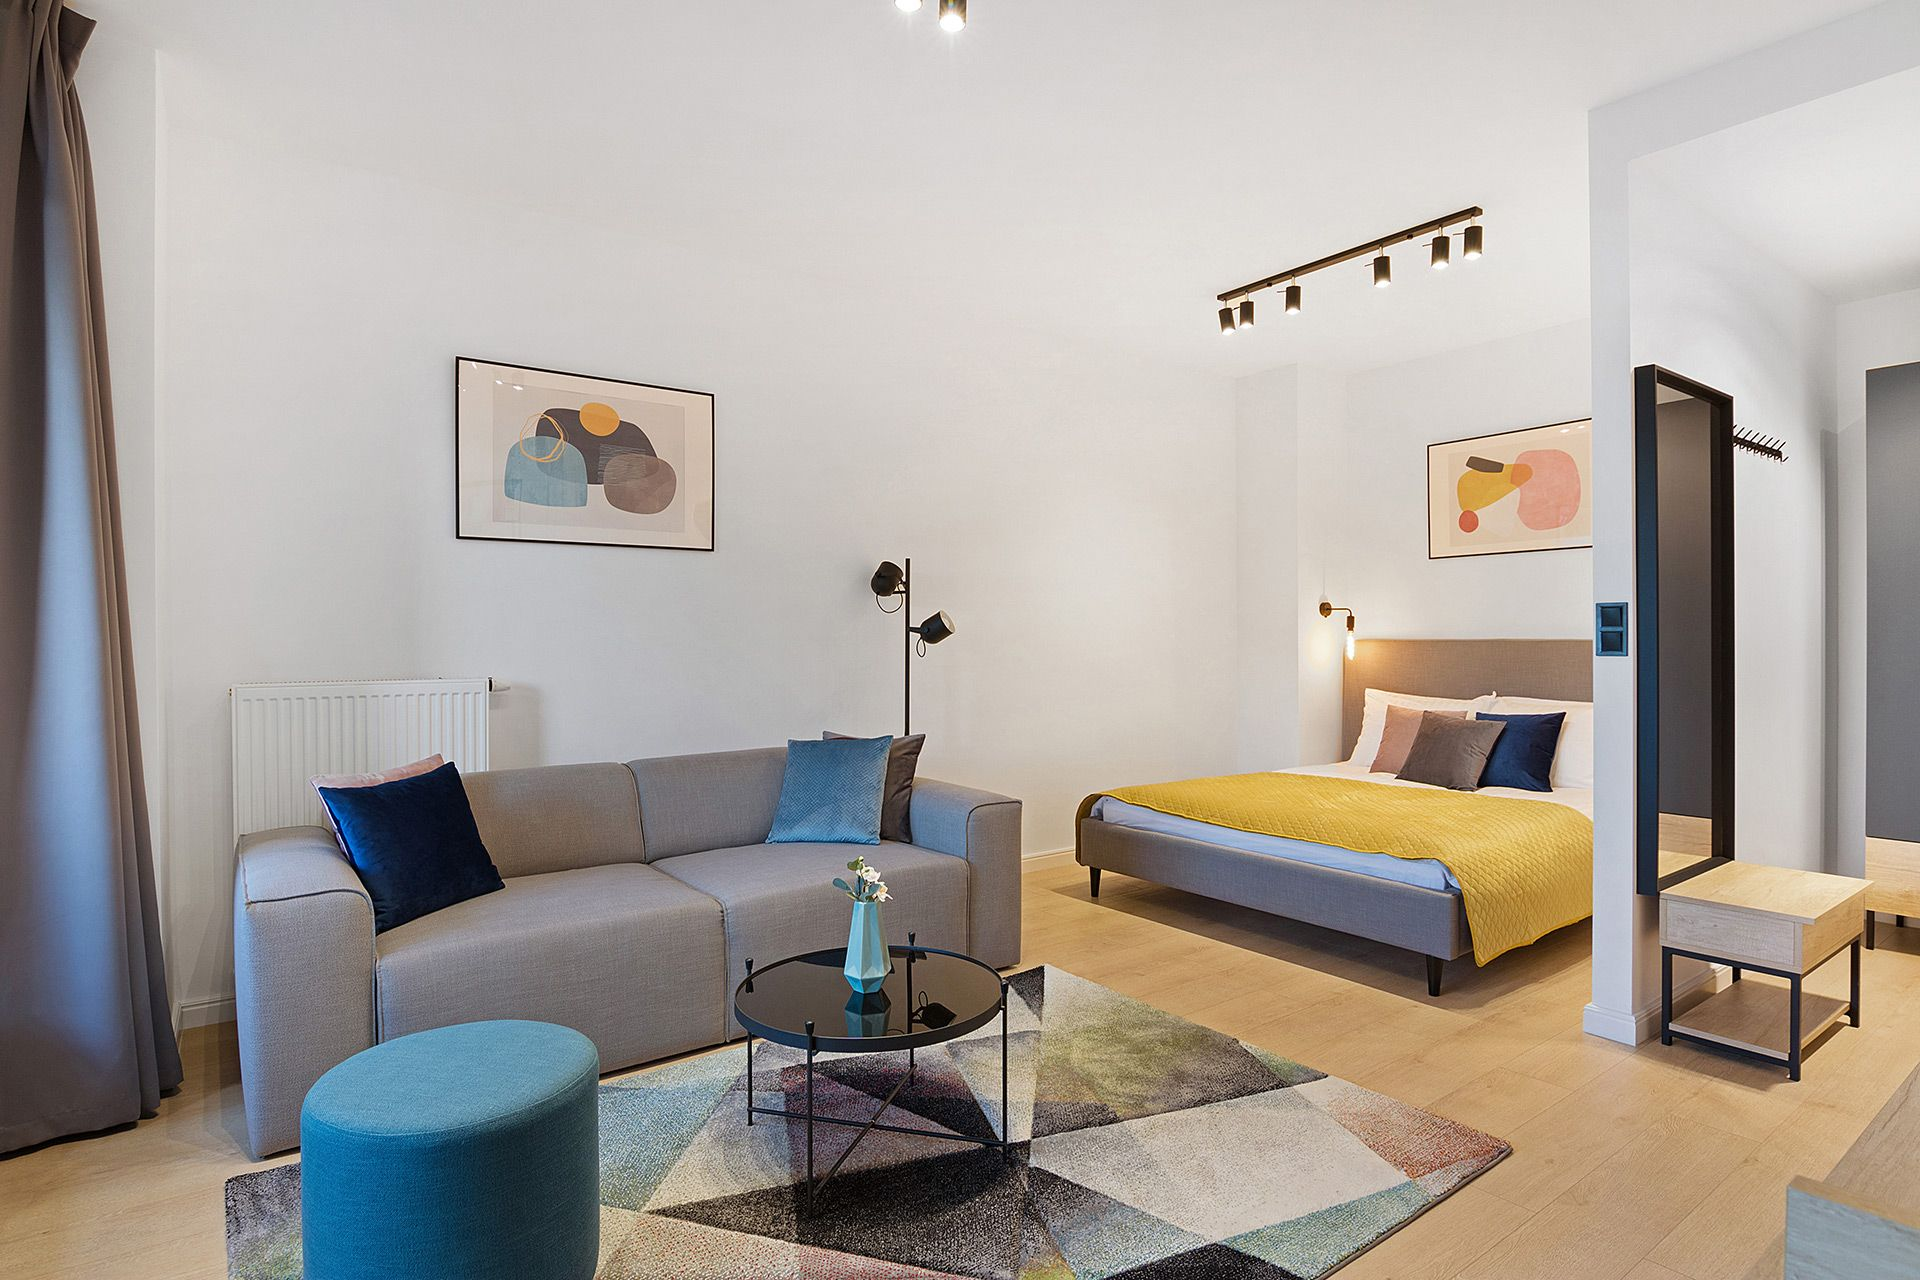 Studio - Medium apartment to rent in Warsaw UPR-A-043-2